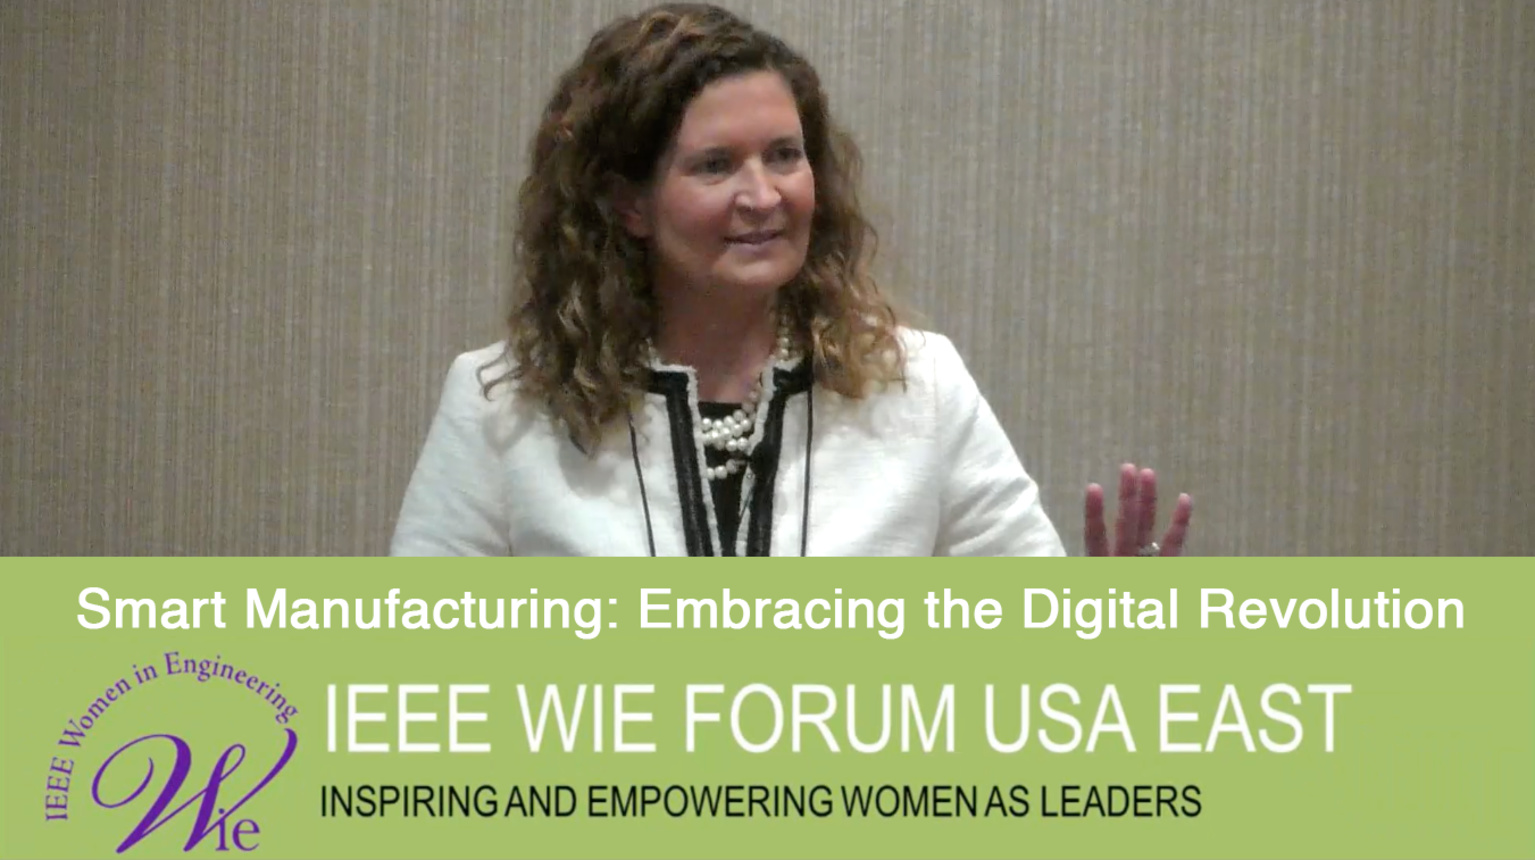 Smart Manufacturing: Embracing the Digital Revolution - Jane Barr at IEEE WIE Forum USA East 2017